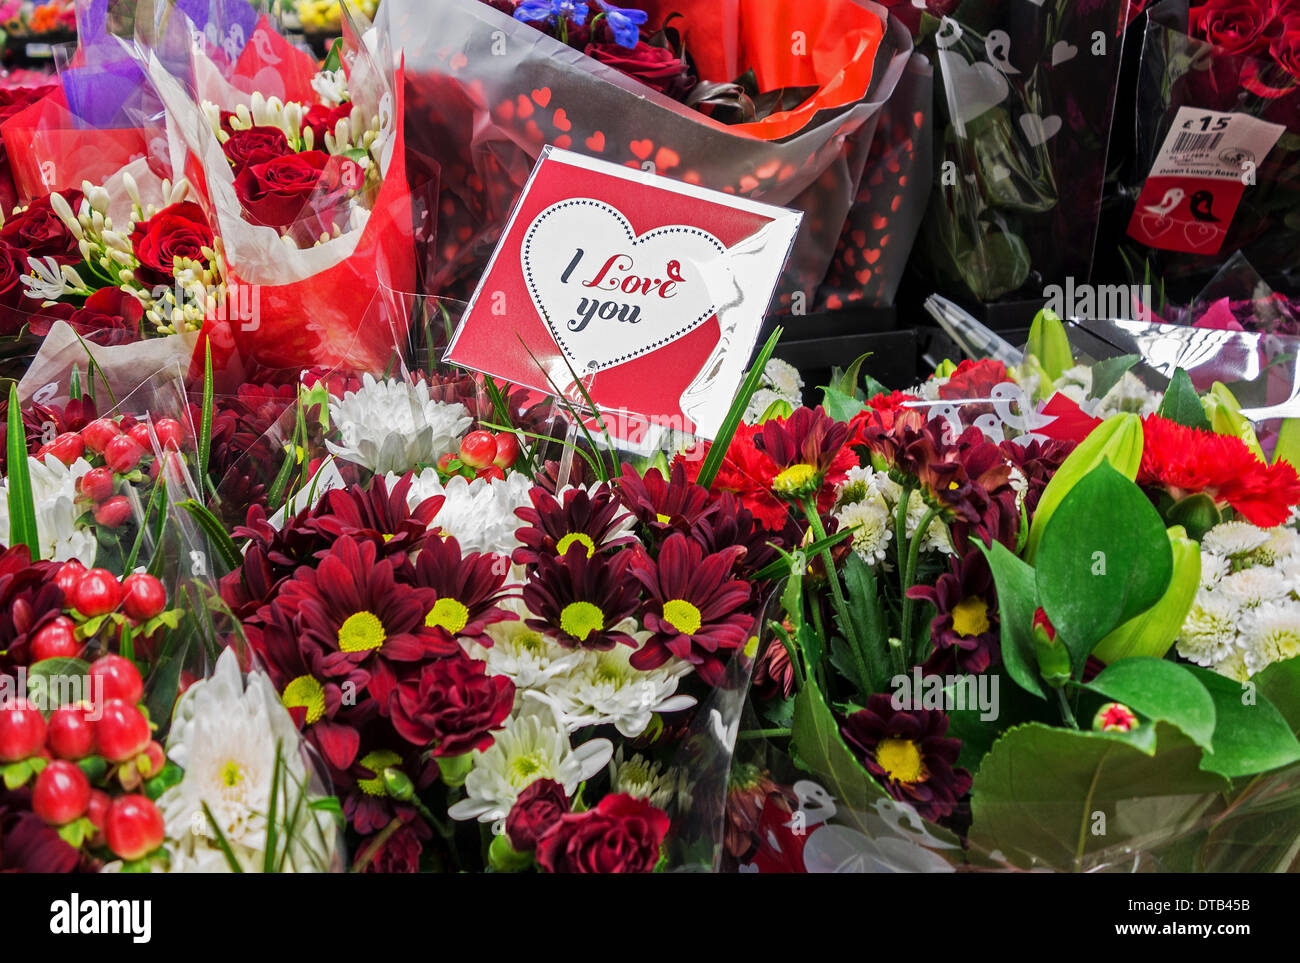 The usual price increase for Valentine flowers does not lessen the popularity of them for a gift on Valentines Day. - Stock Image